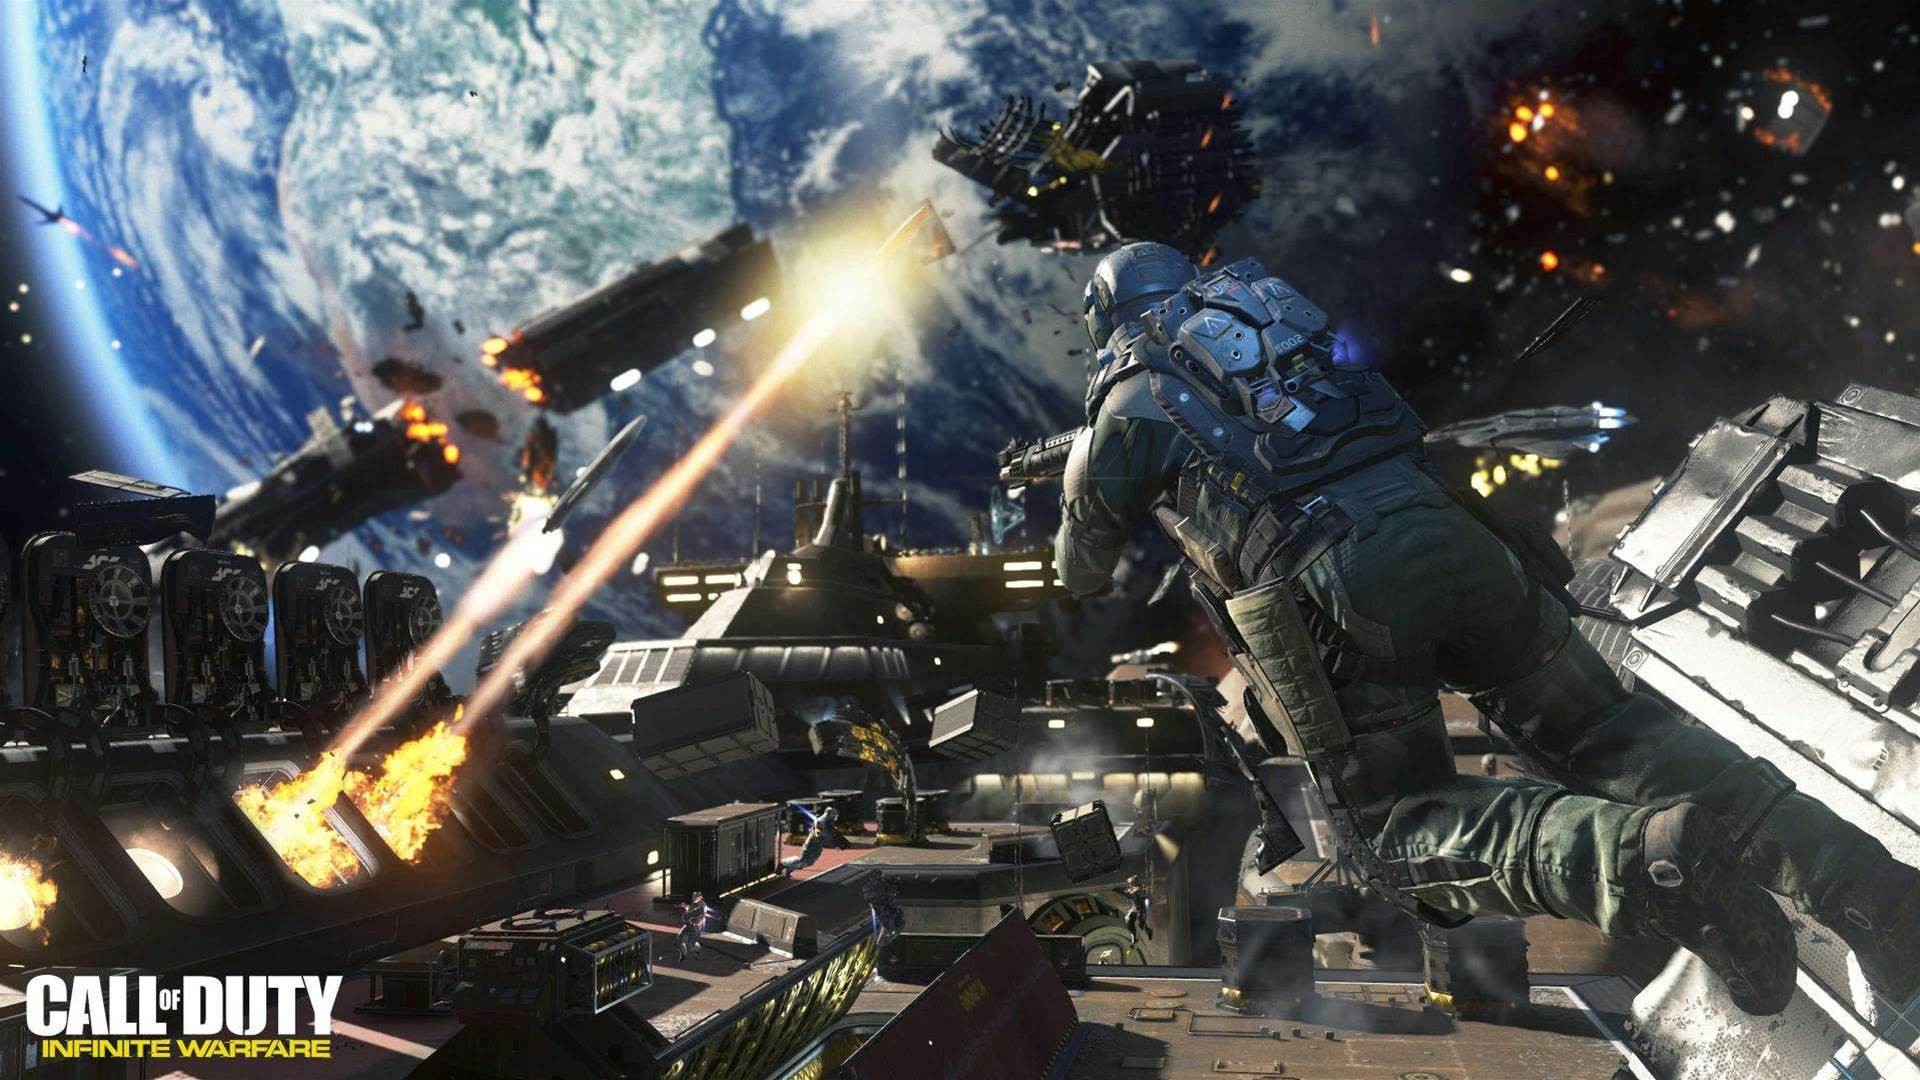 E3 2016 - Call of Duty: Infinite Warfare screenshots